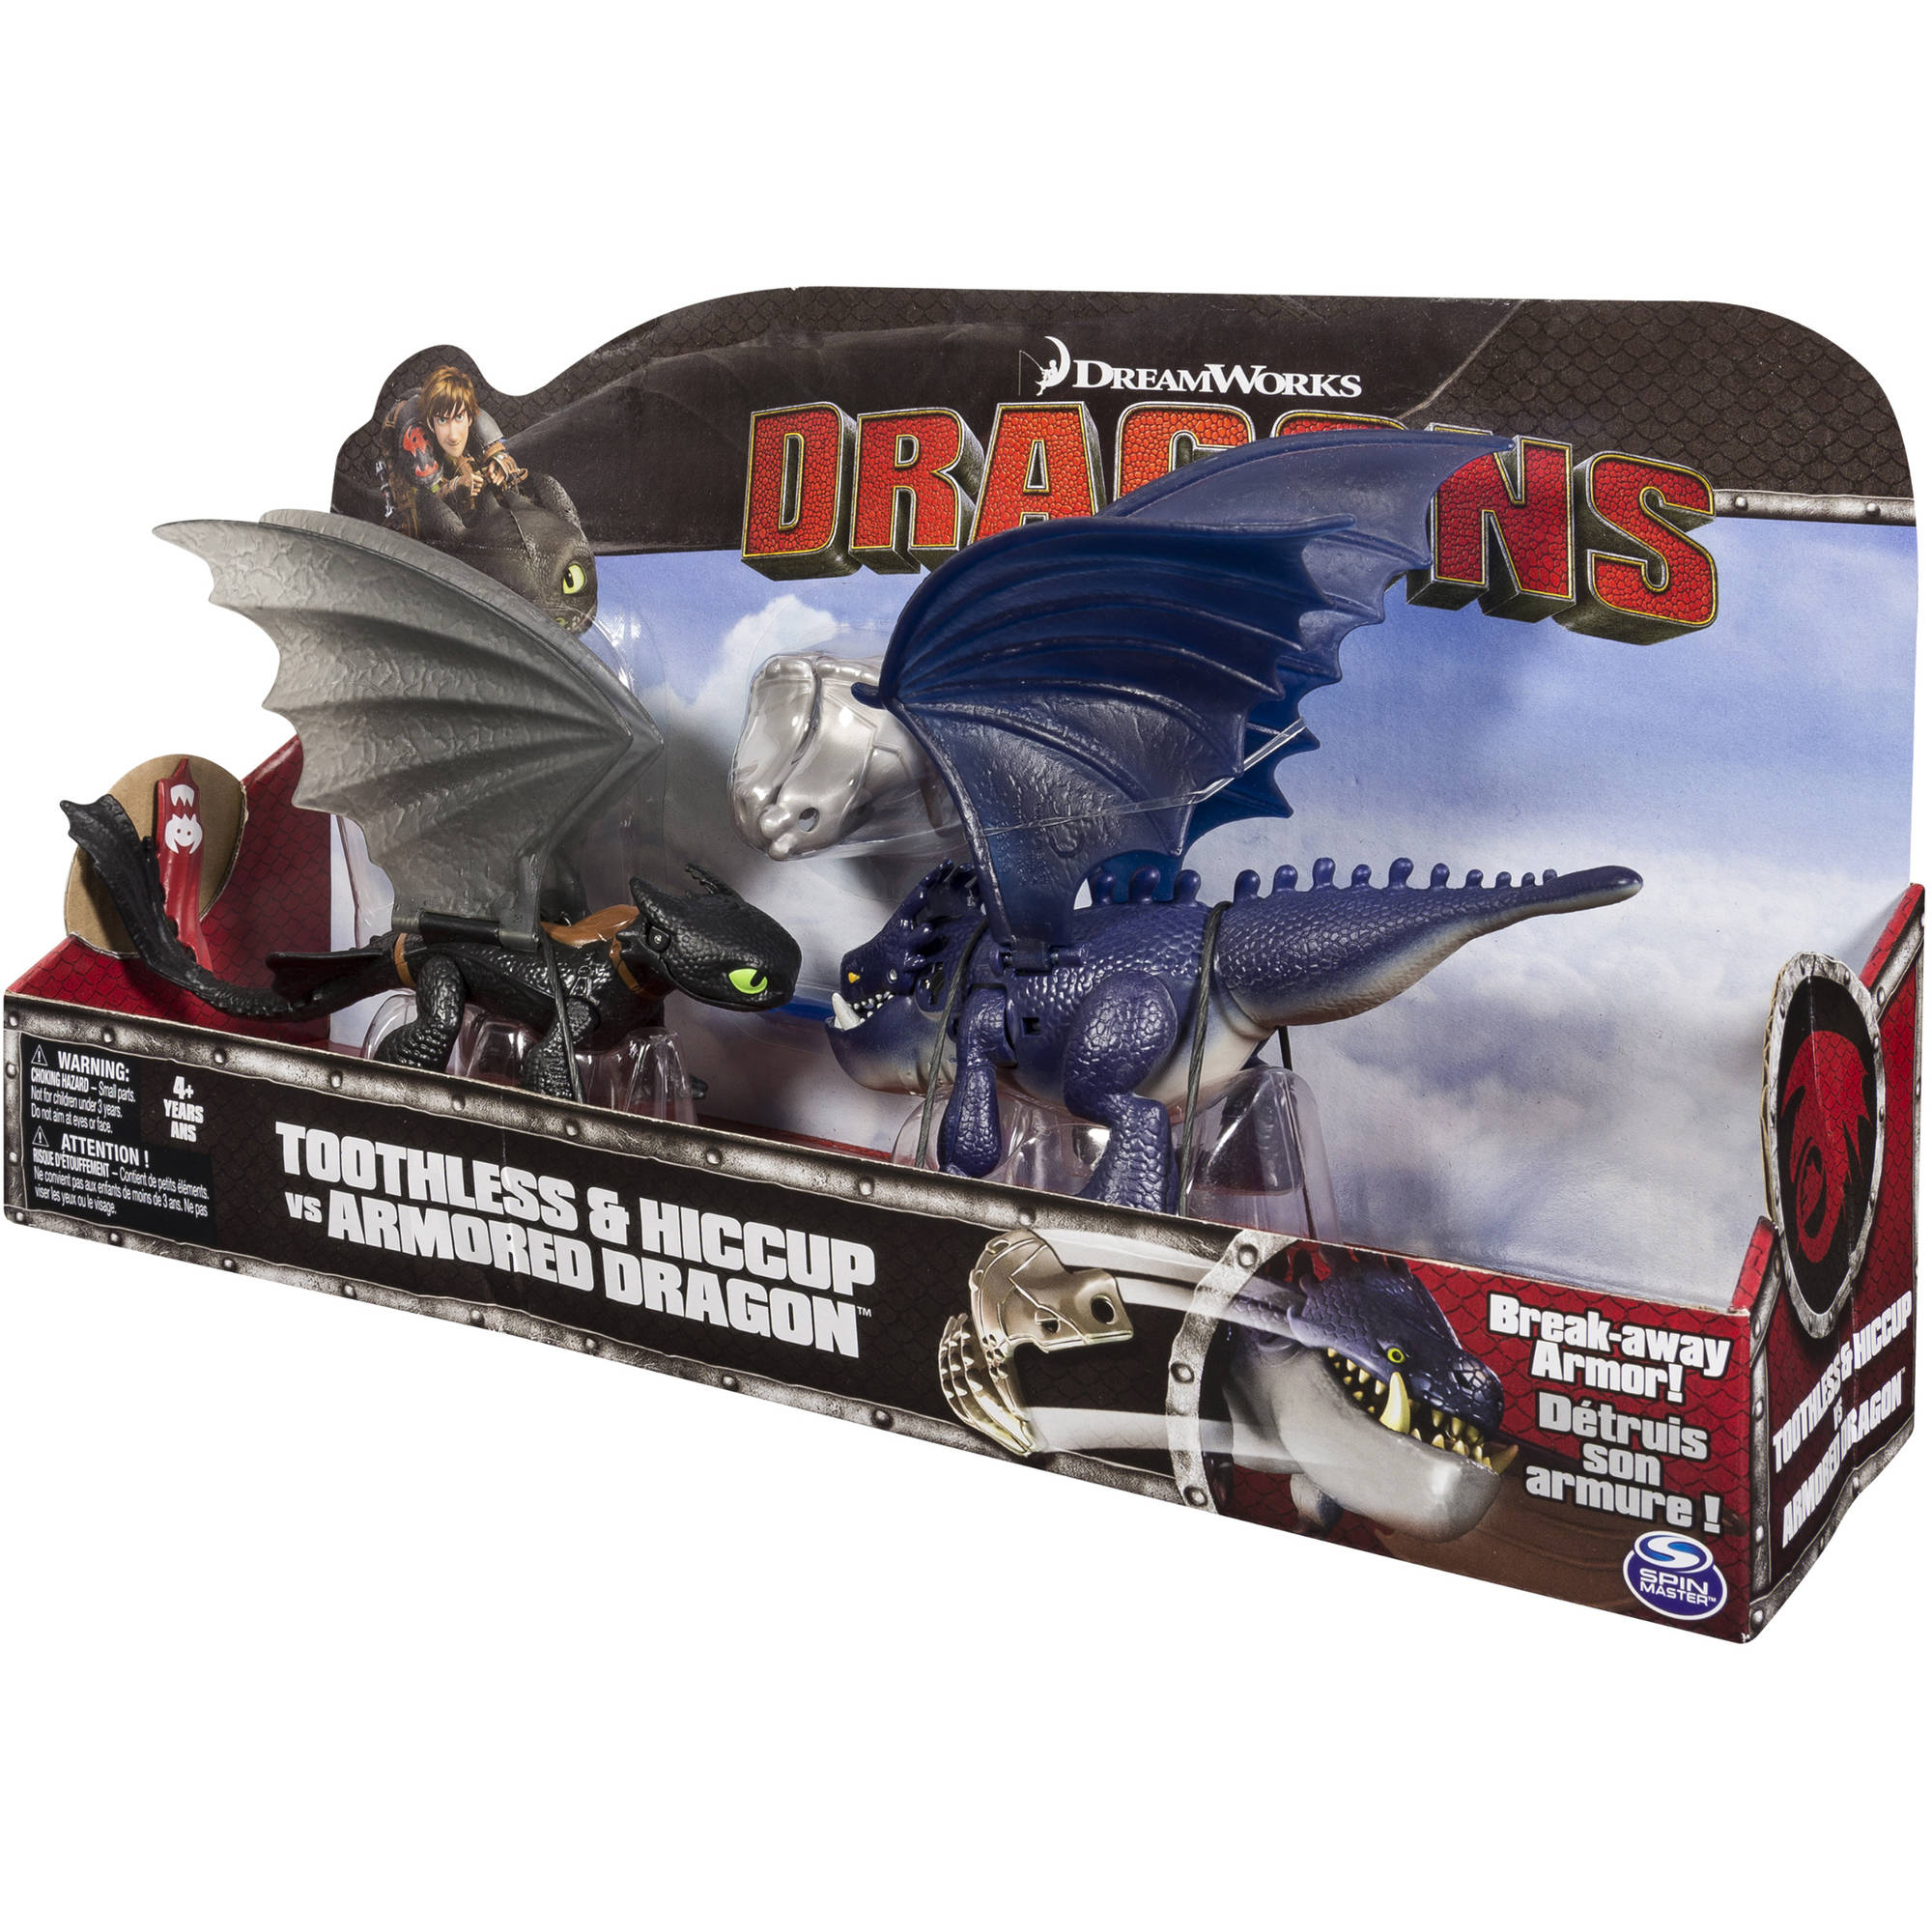 Dreamworks Dragons Toothless And Hiccup Vs Armored Dragon Figures   Walmart